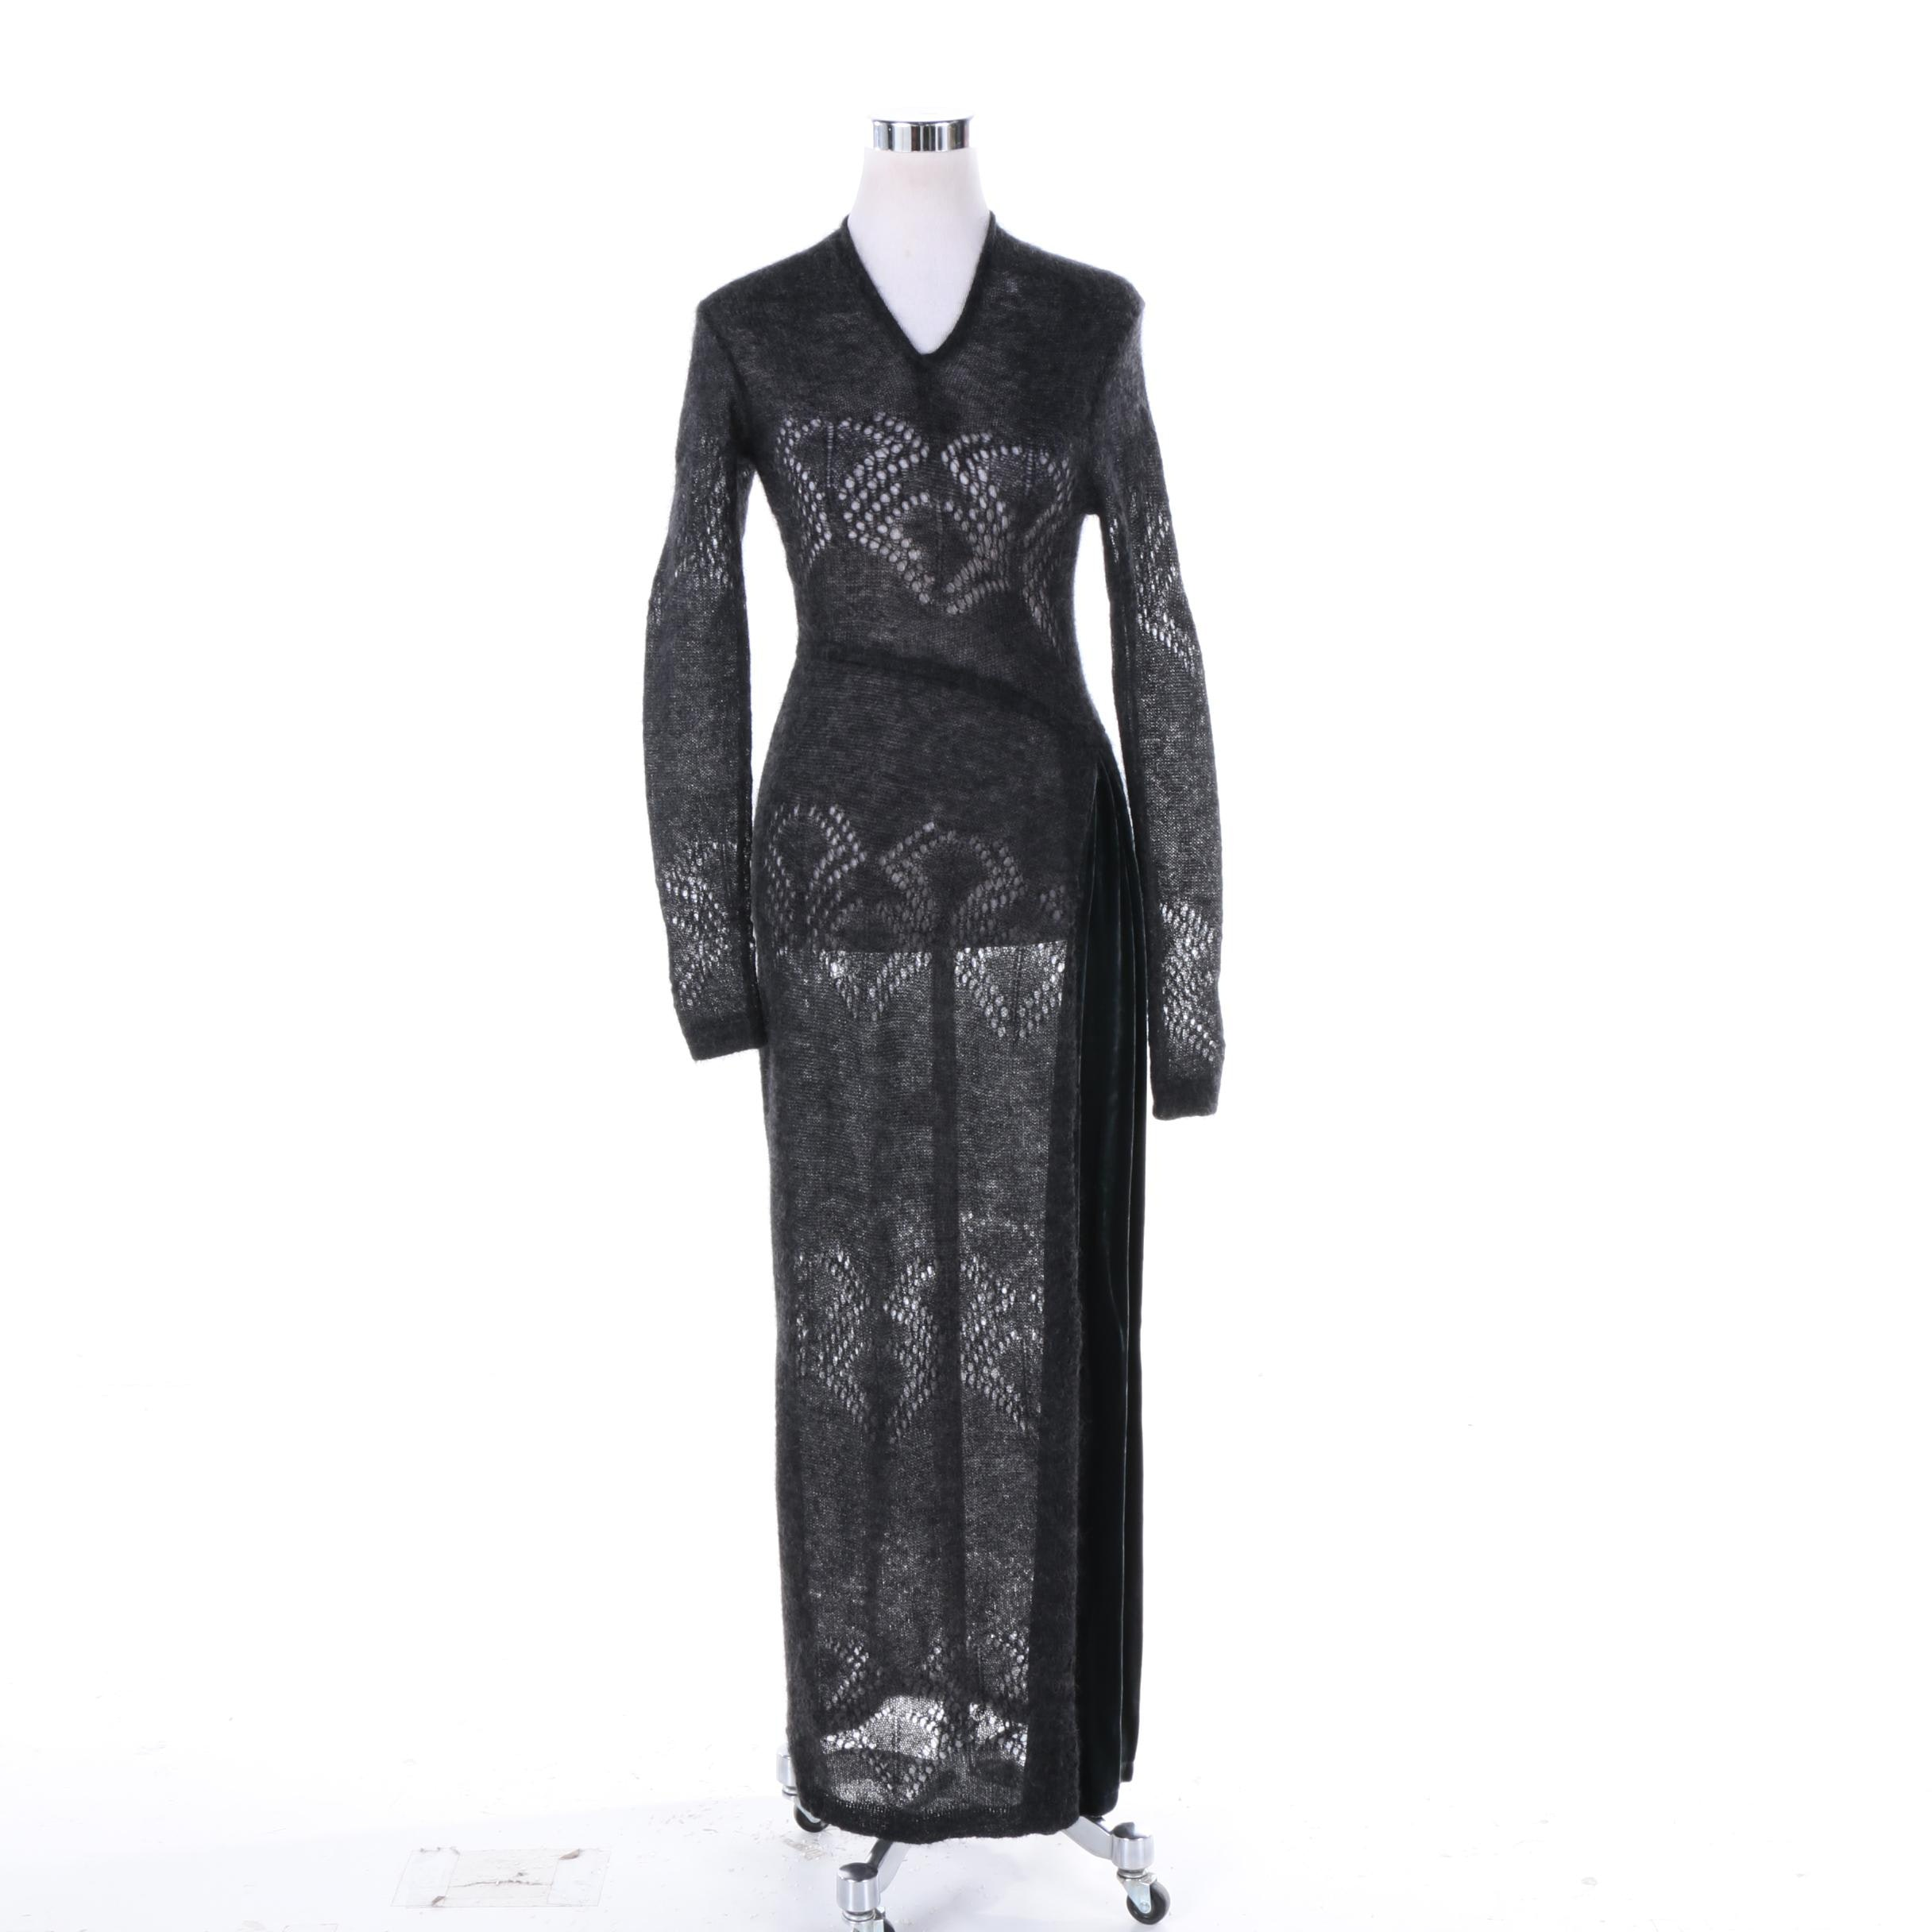 Industria Sheer Black Mohair Blend Knit Dress with Velvet Trim